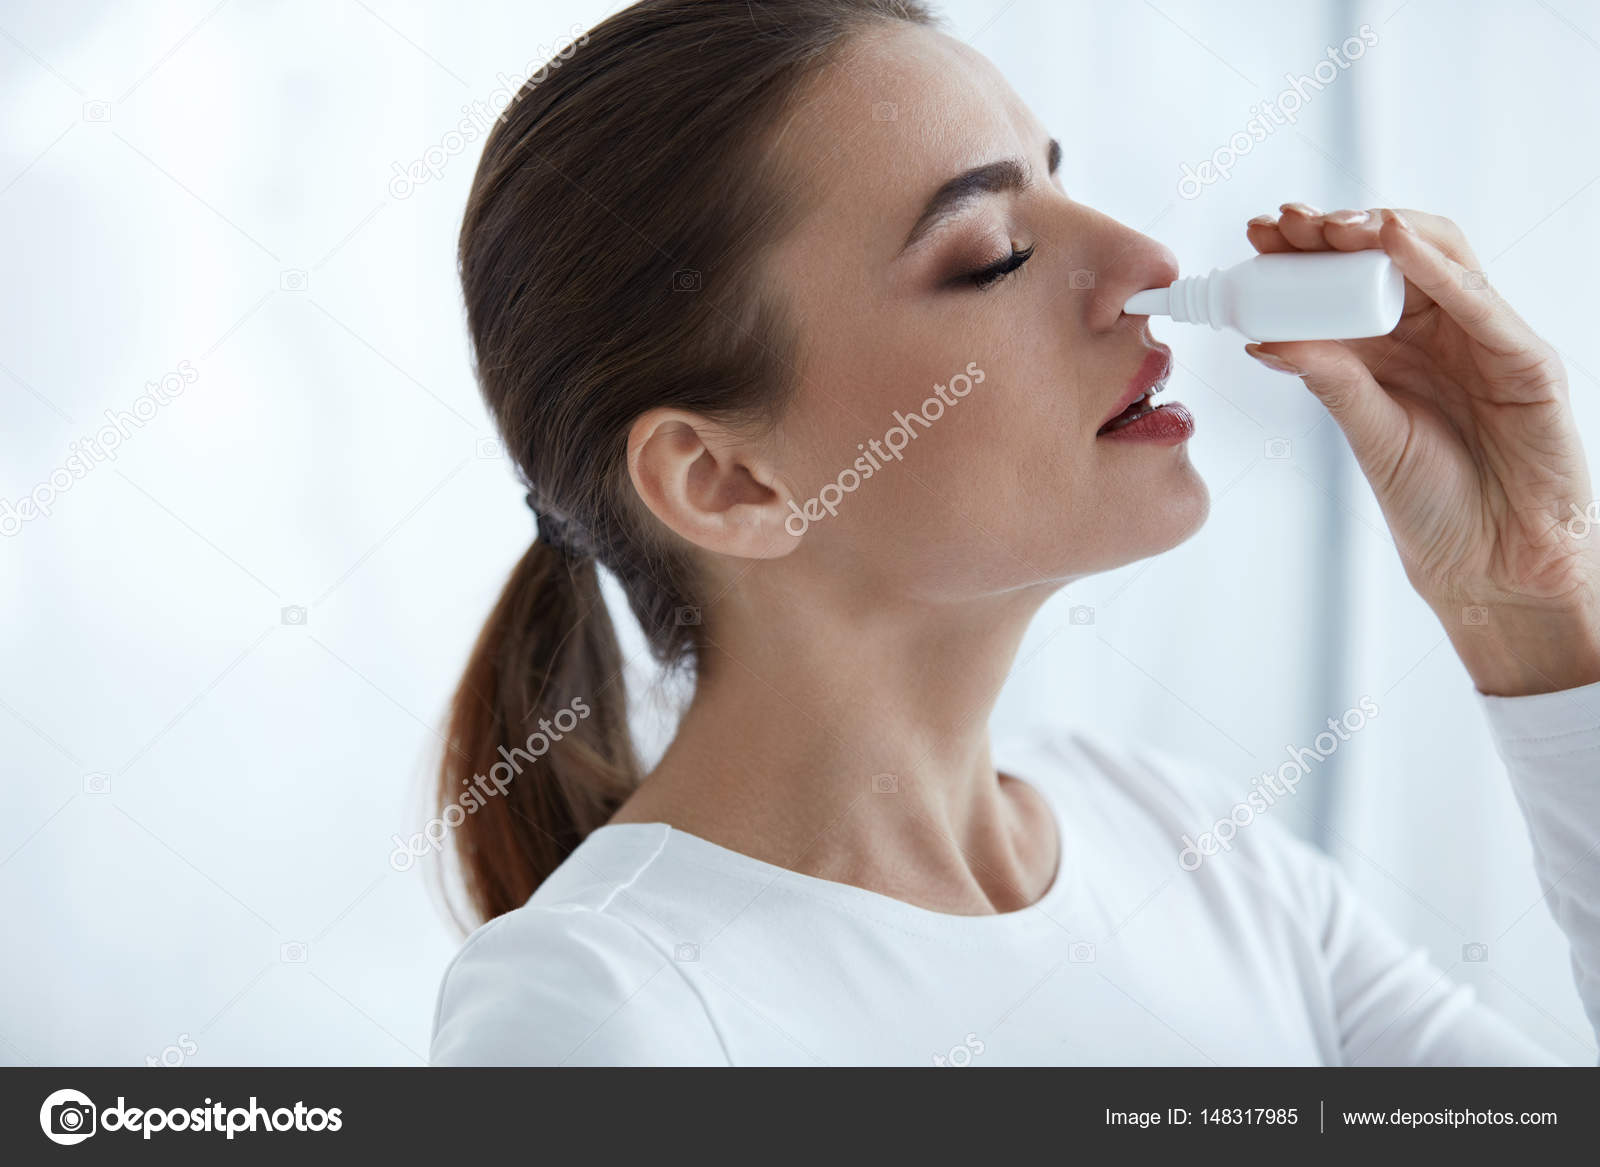 What are needed drops in the nose with an antibiotic for sinus 7